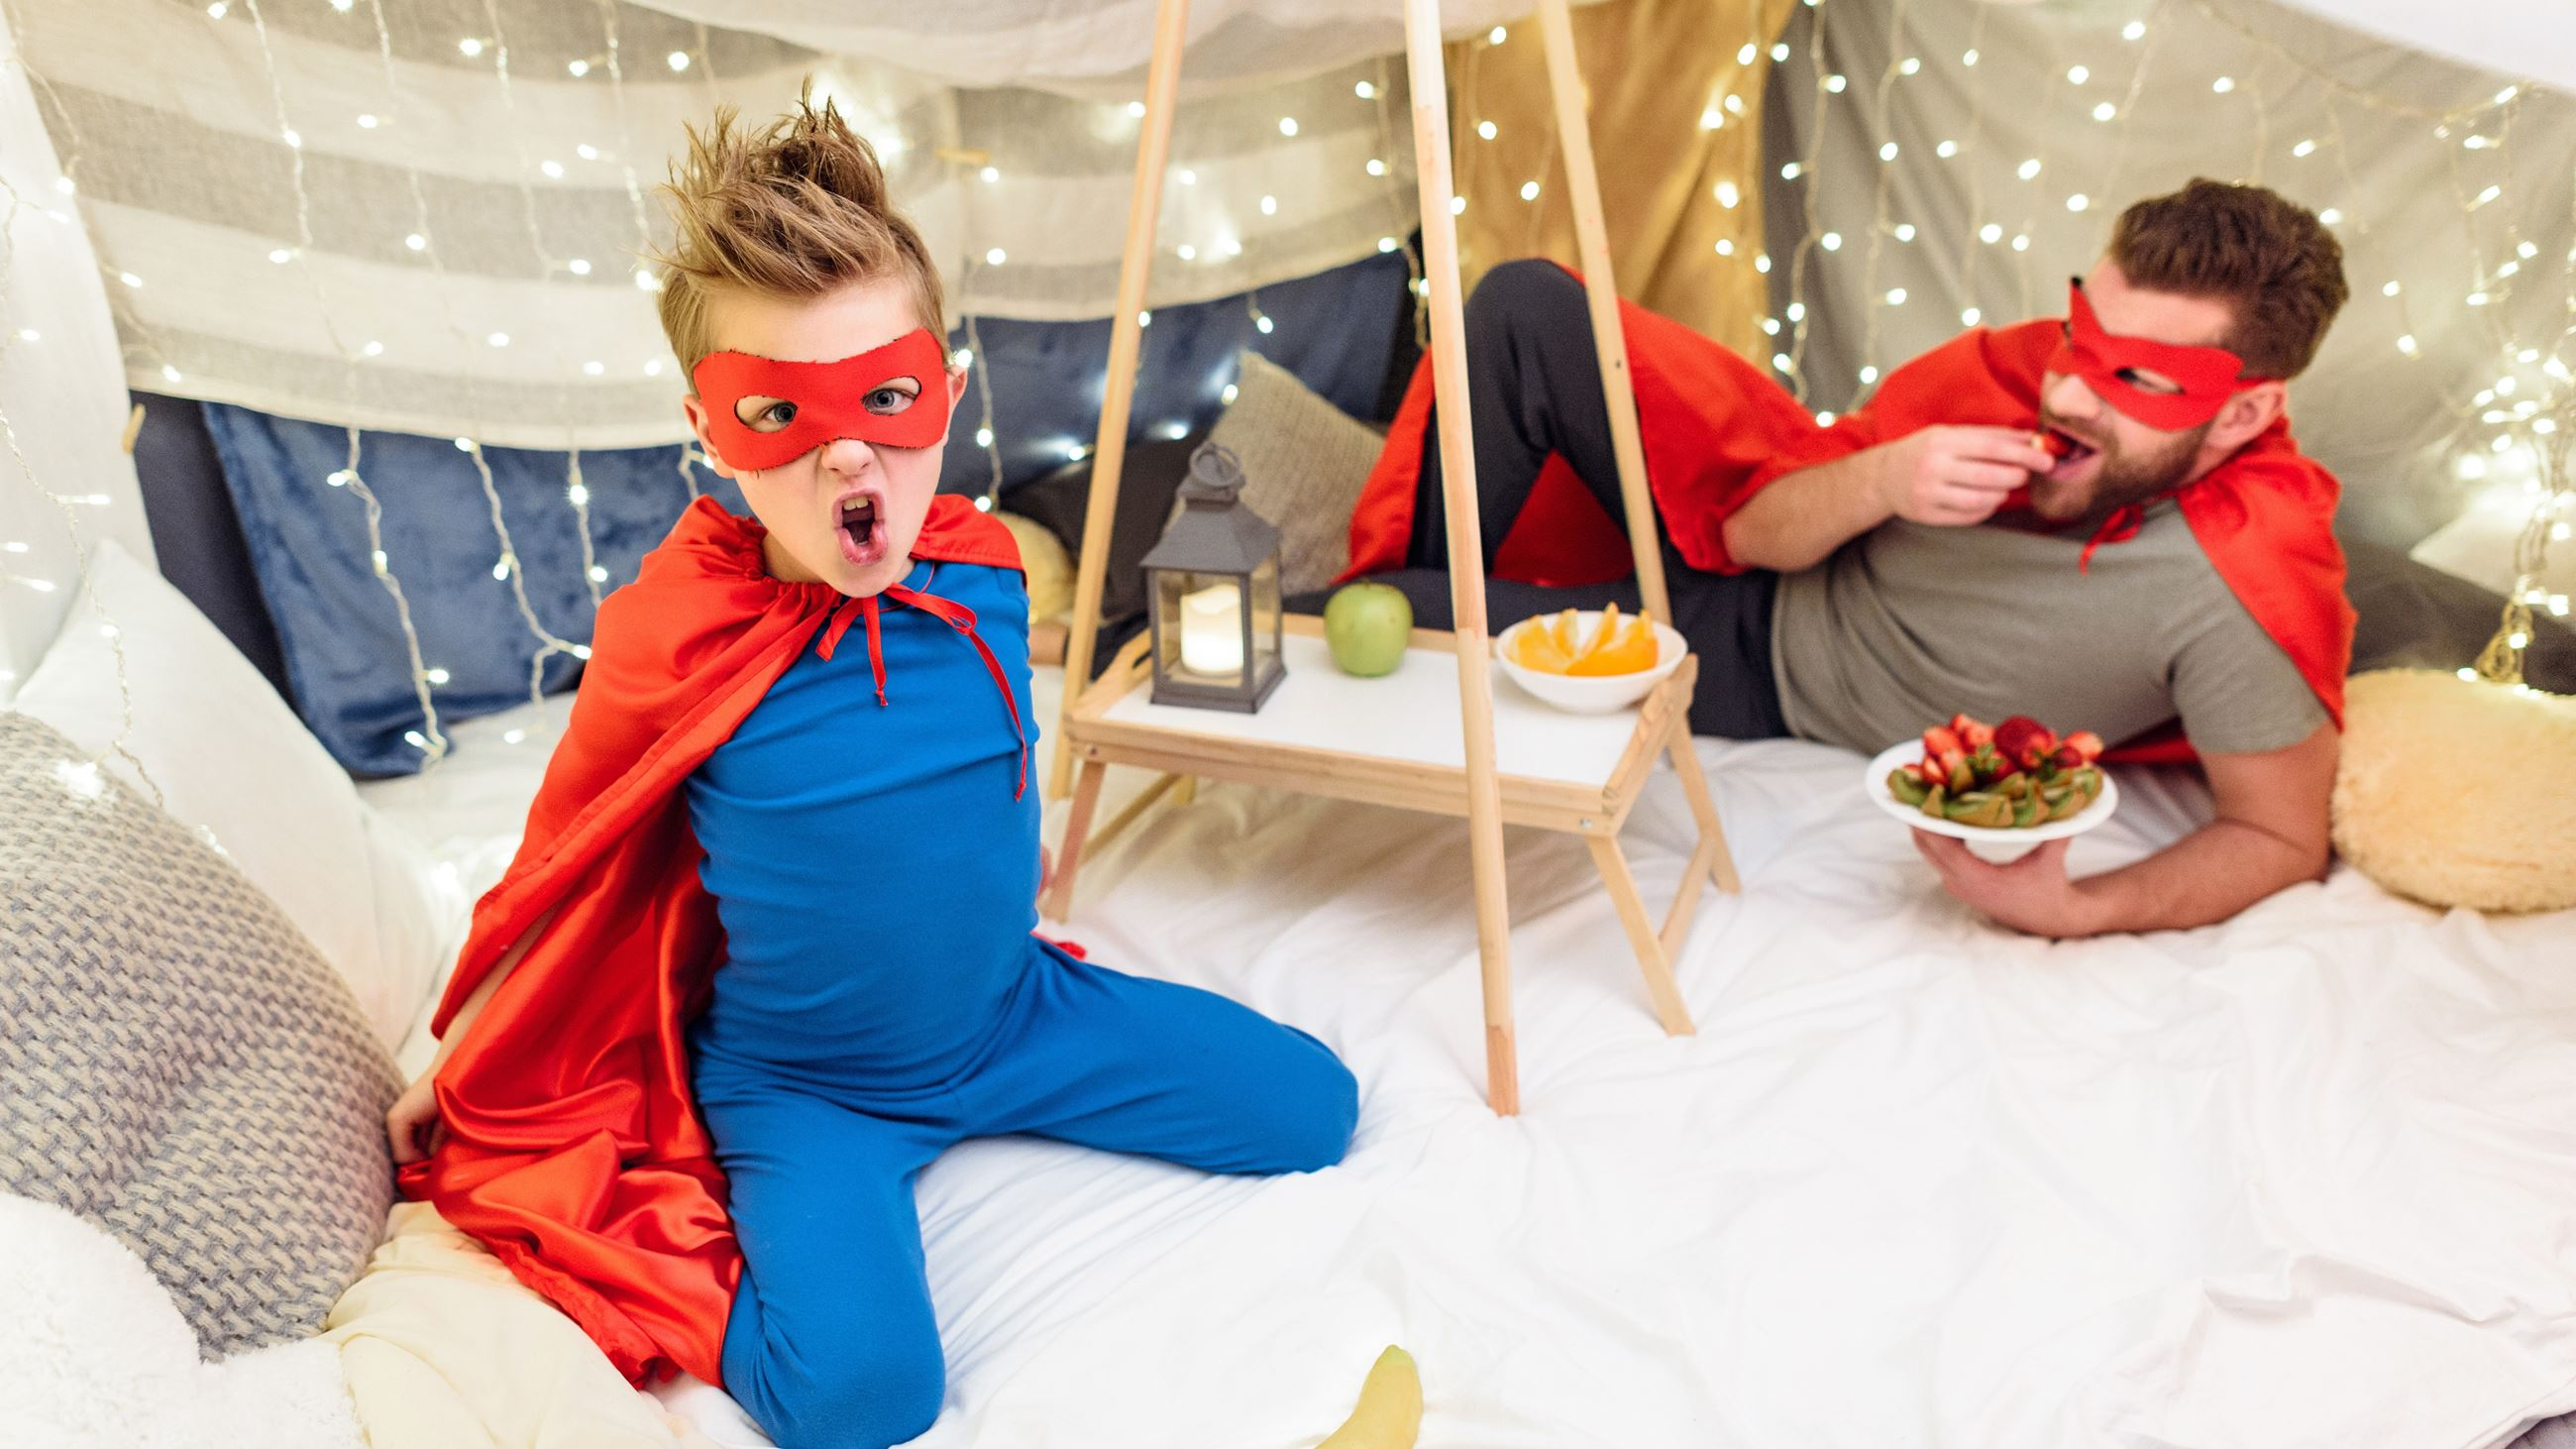 Happy father and son in superhero costumes eating fruits in blanket fort